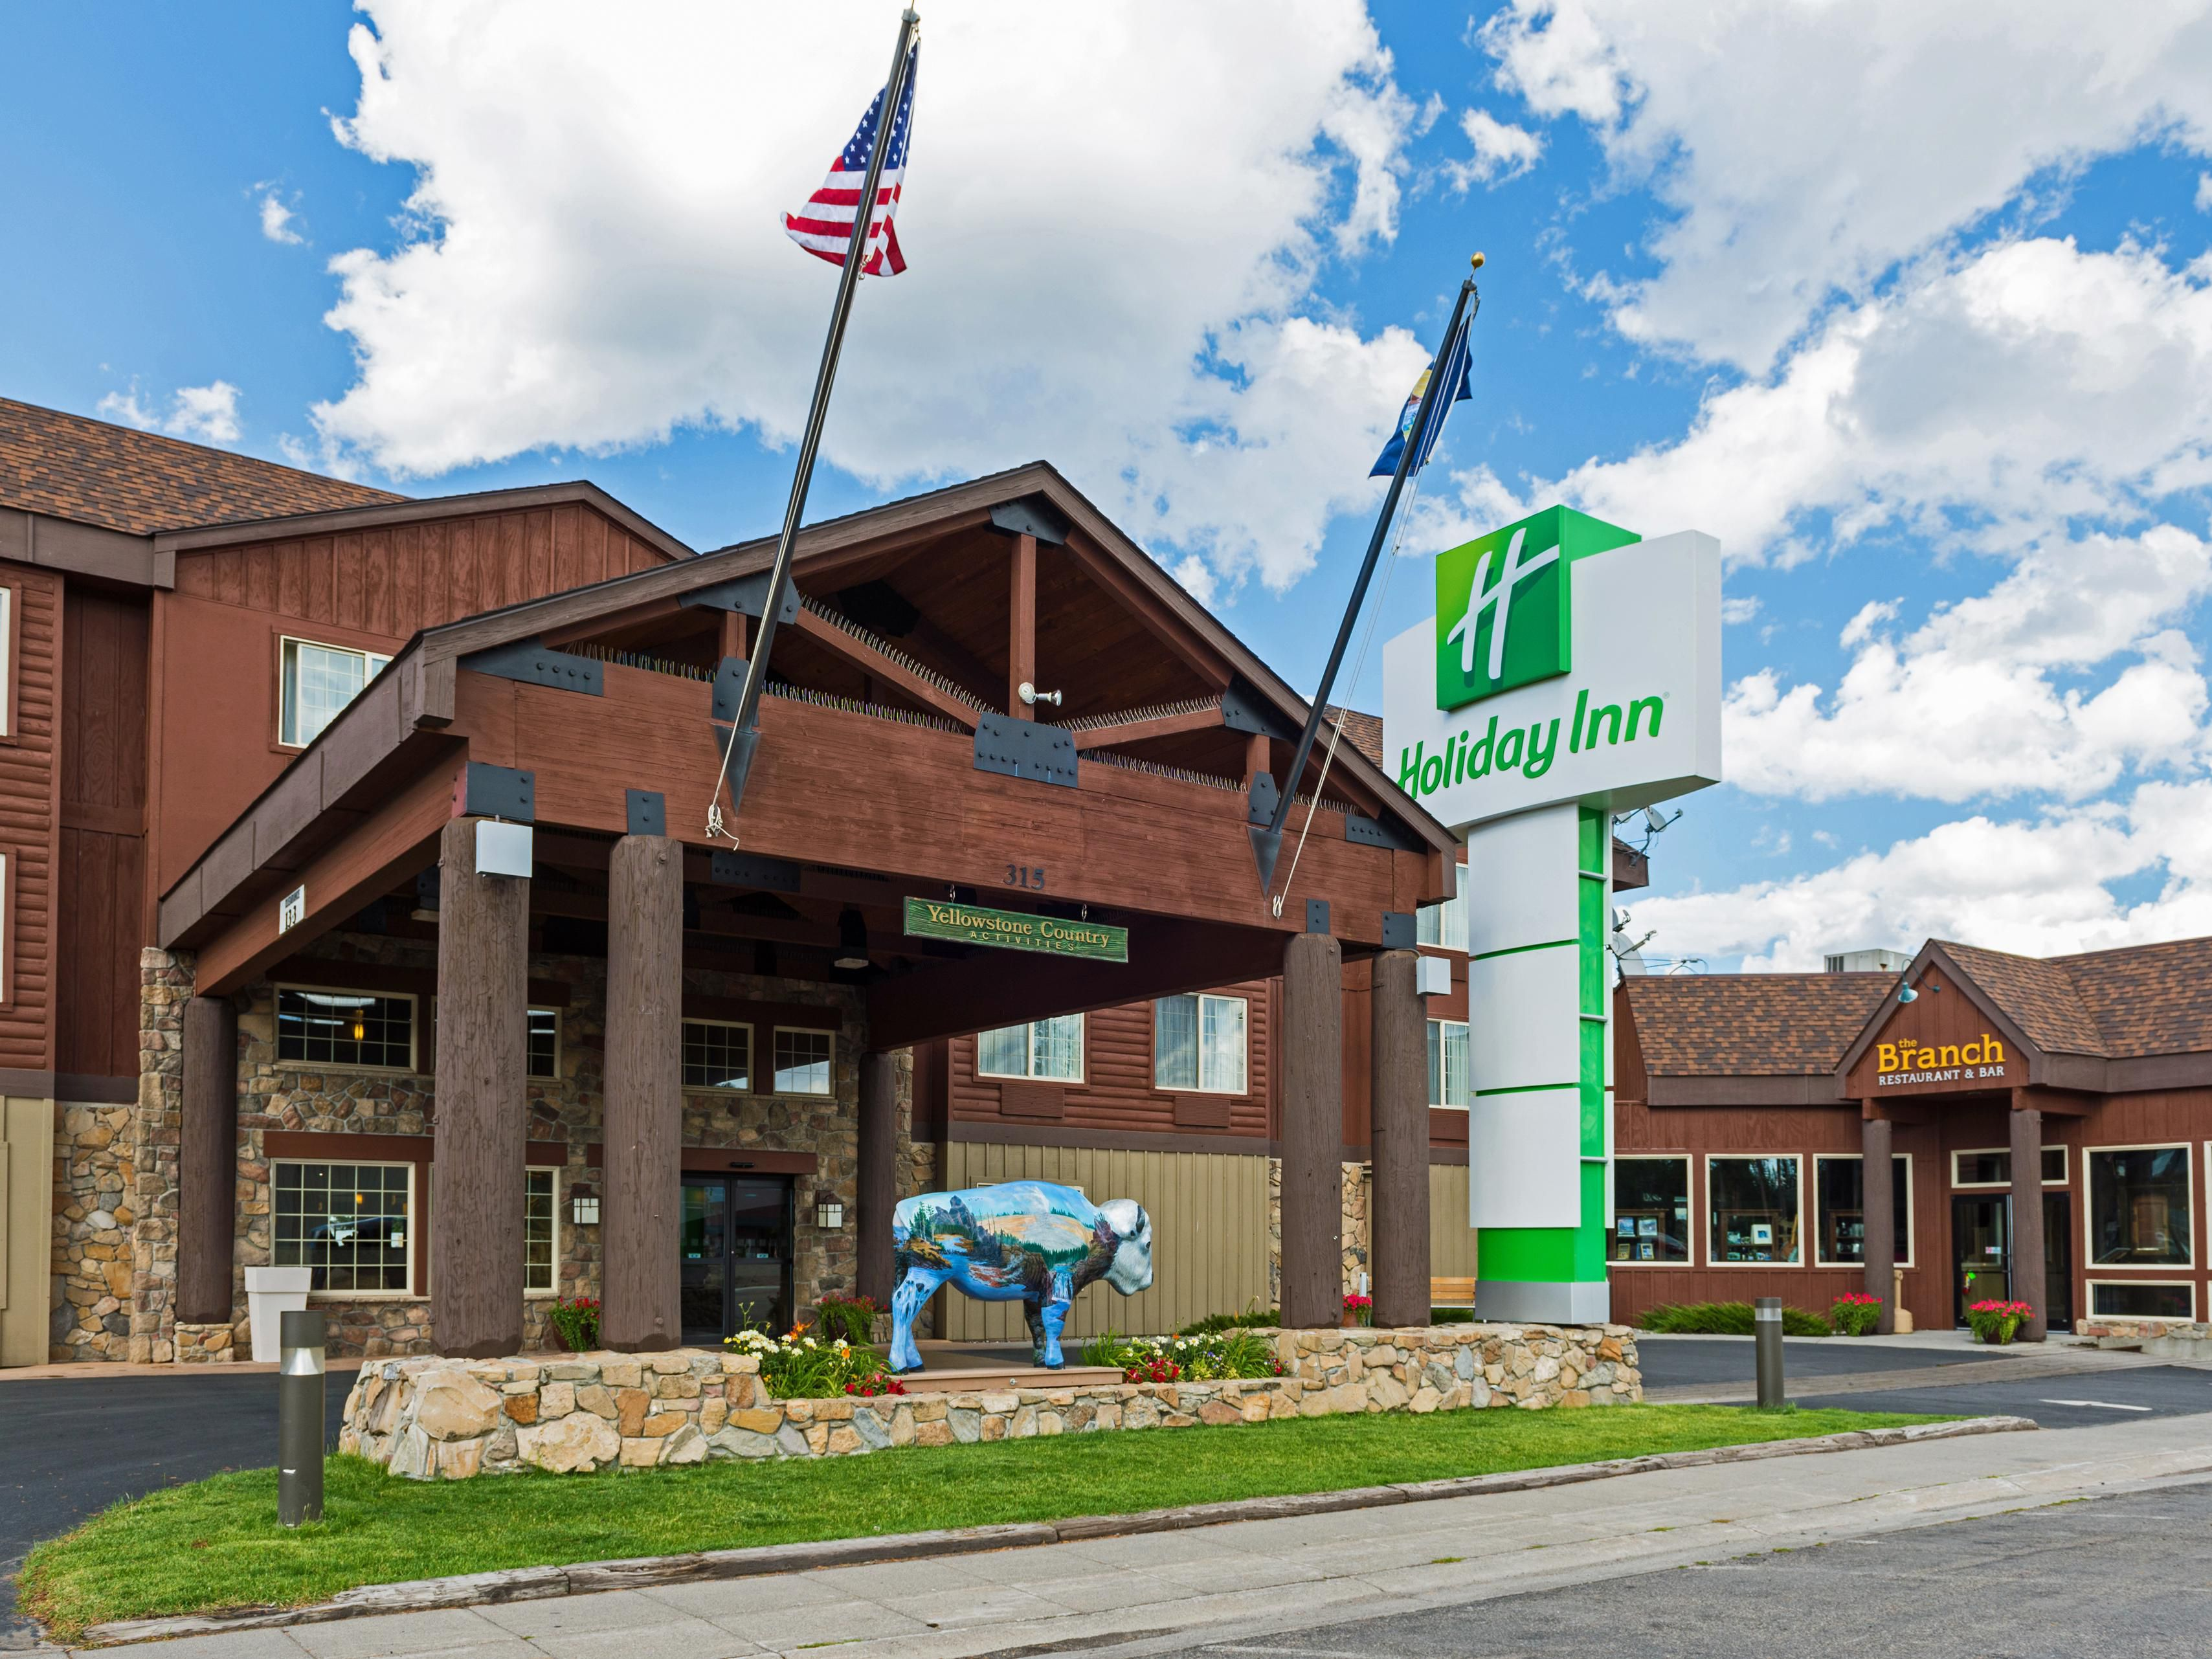 Holiday Inn Yellowstone Park Hotel